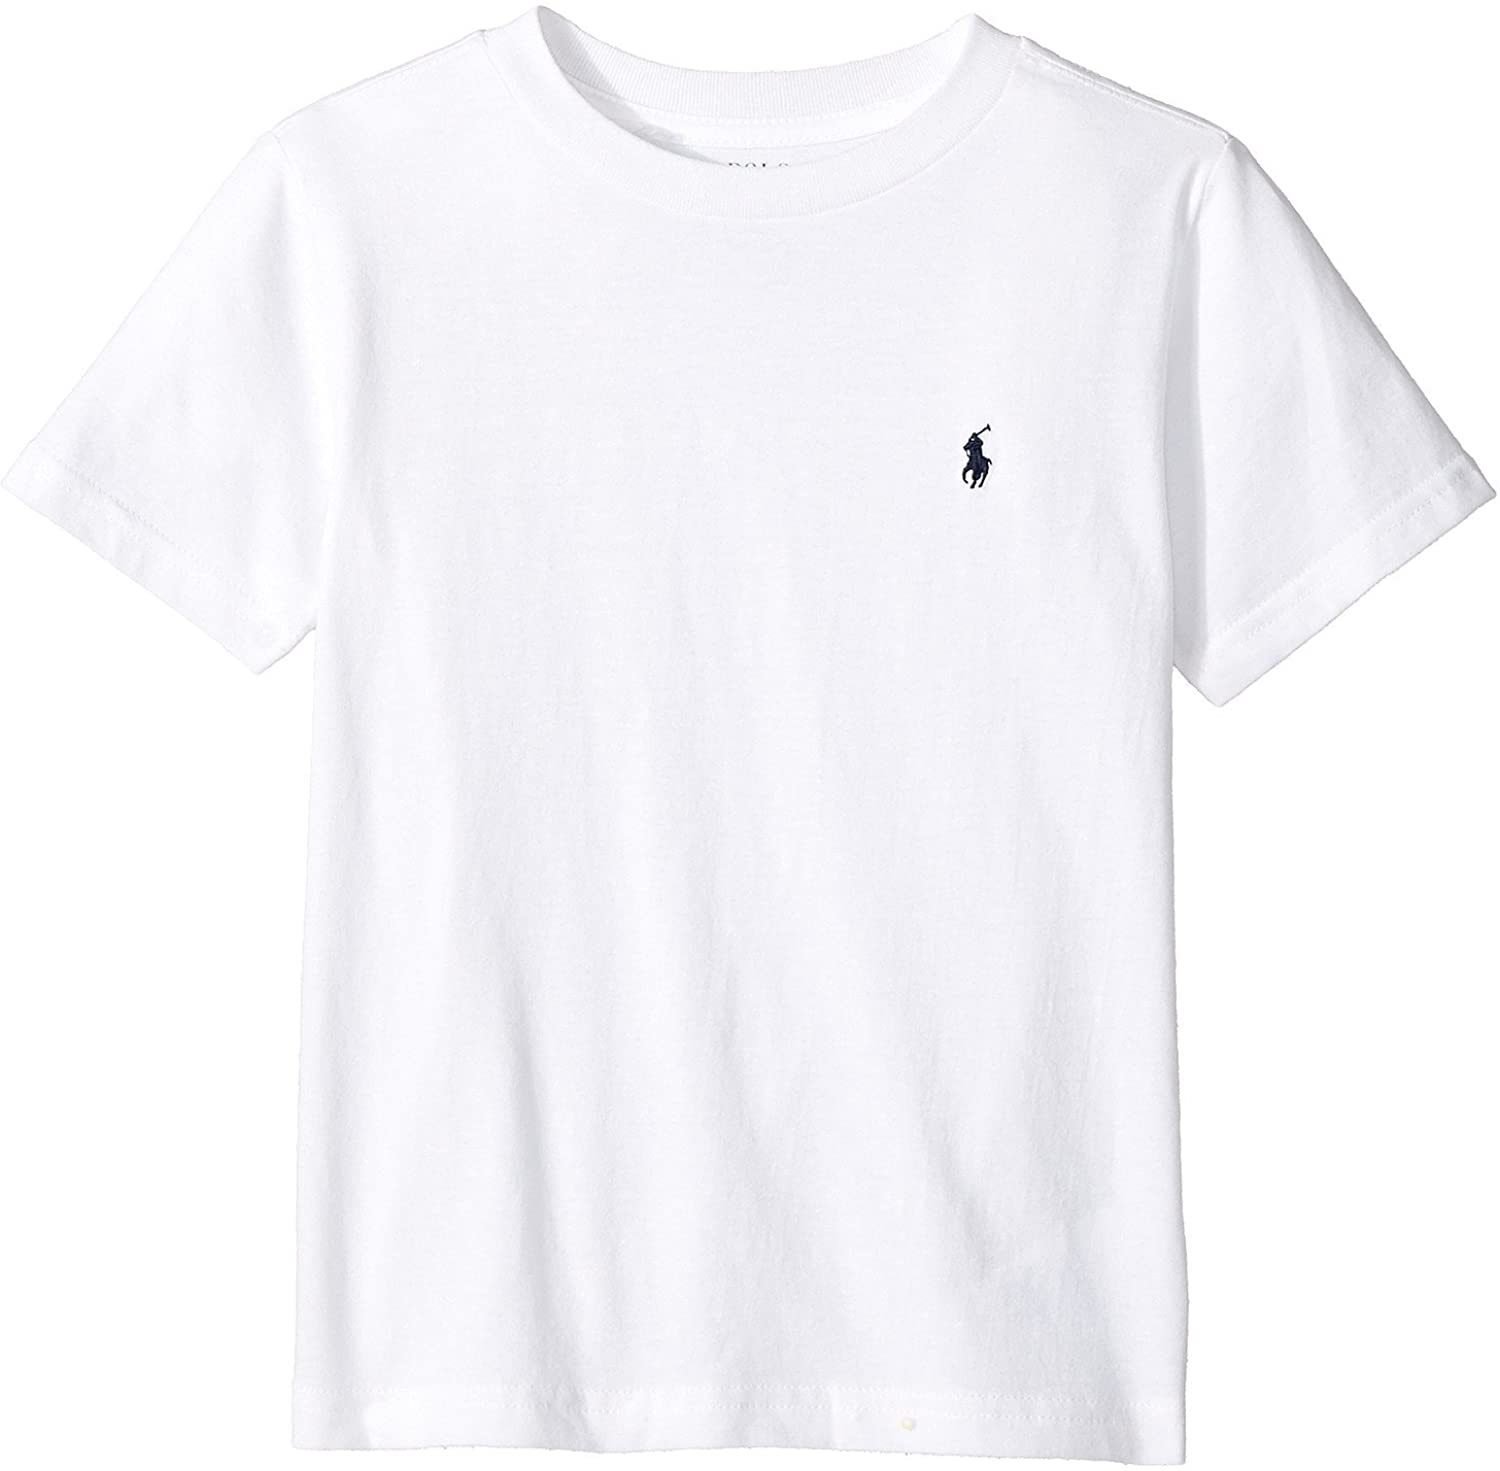 Polo Ralph Lauren Kids Boy's Cotton Jersey Crew Neck T-Shirt (Little Kids/Big Kids) White 5 Little Kids